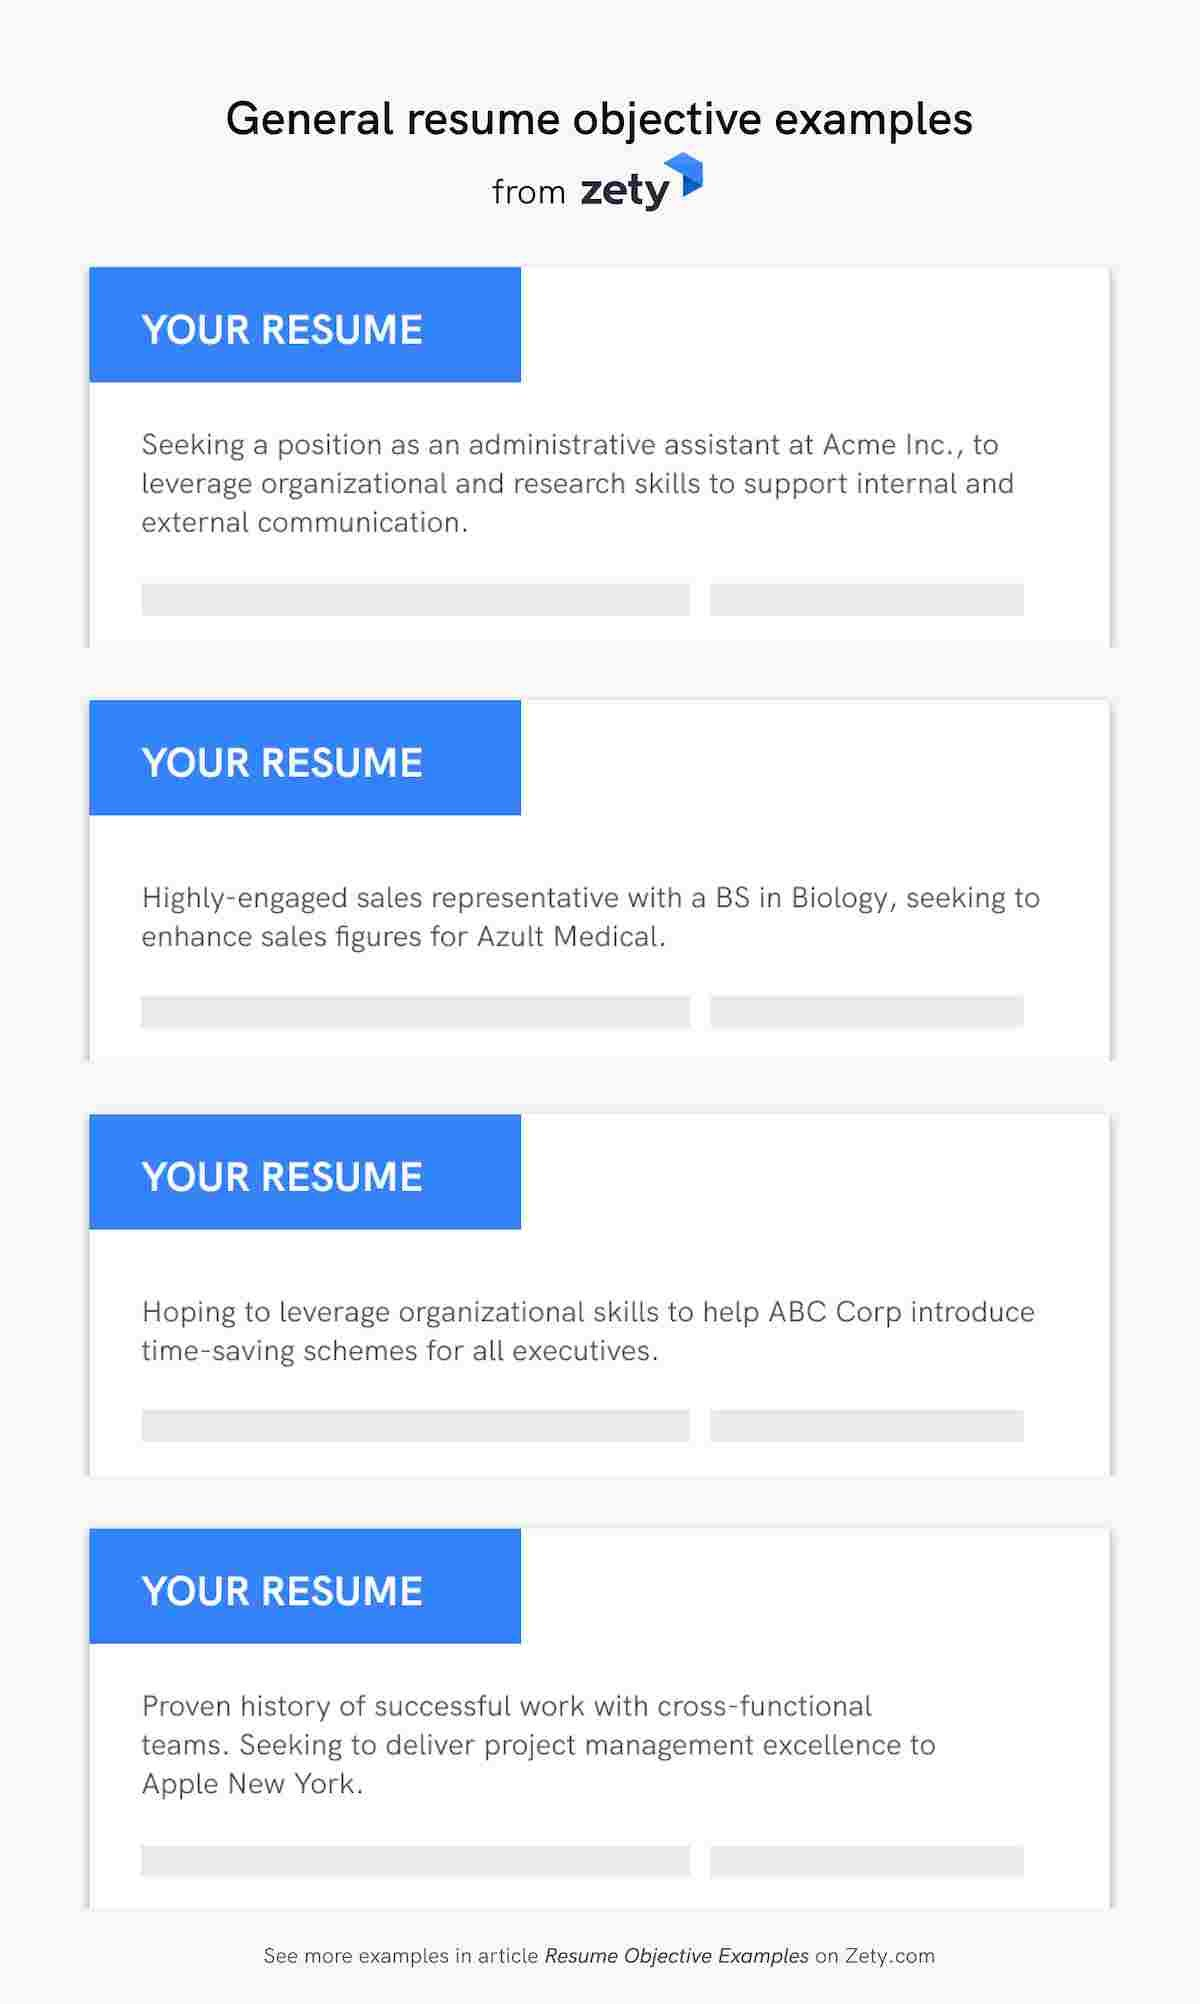 resume objective examples career objectives for all jobs high school general best job Resume High School Resume Objective